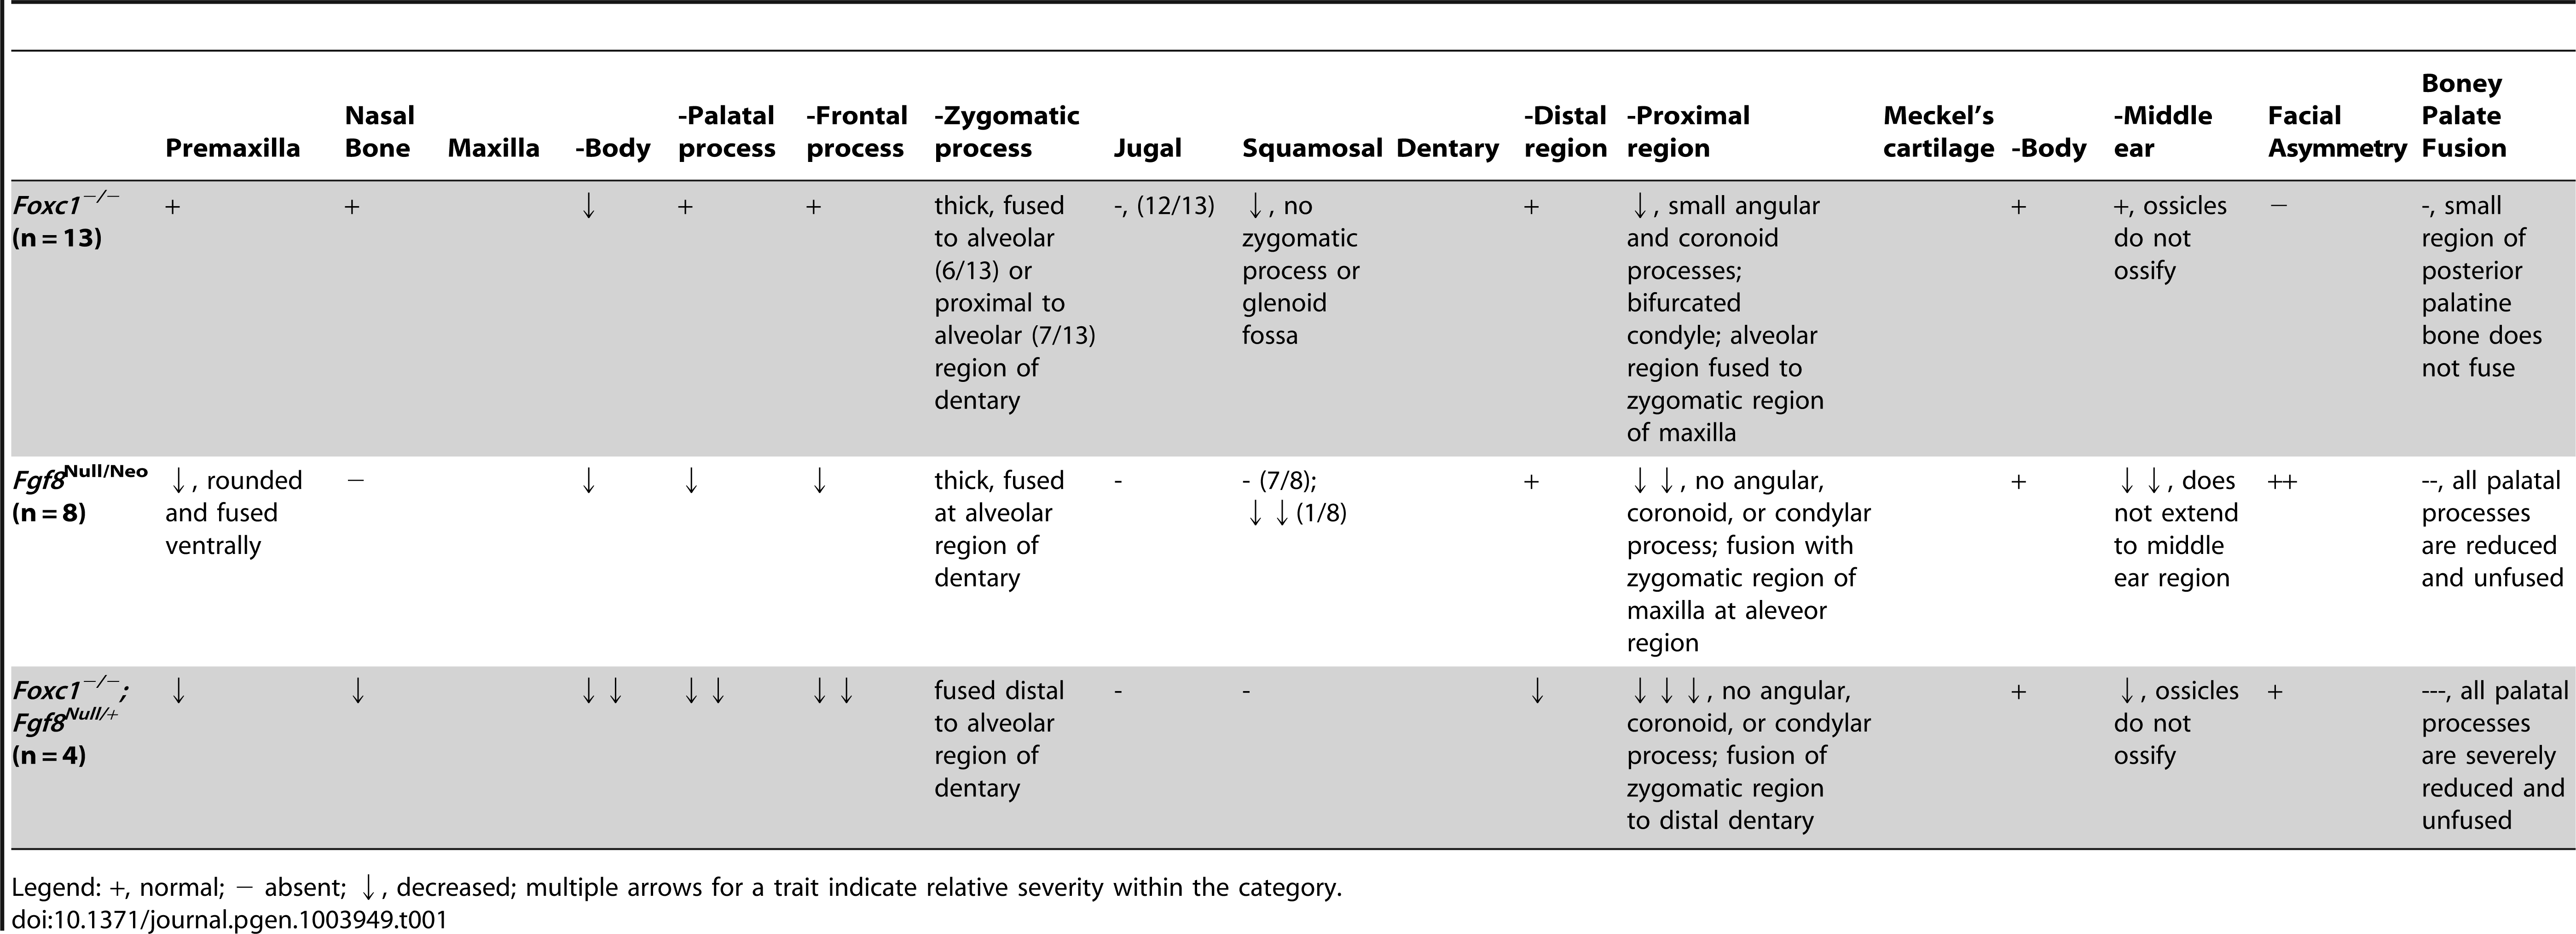 Summary of skeletal phenotypes in jaw related structures.